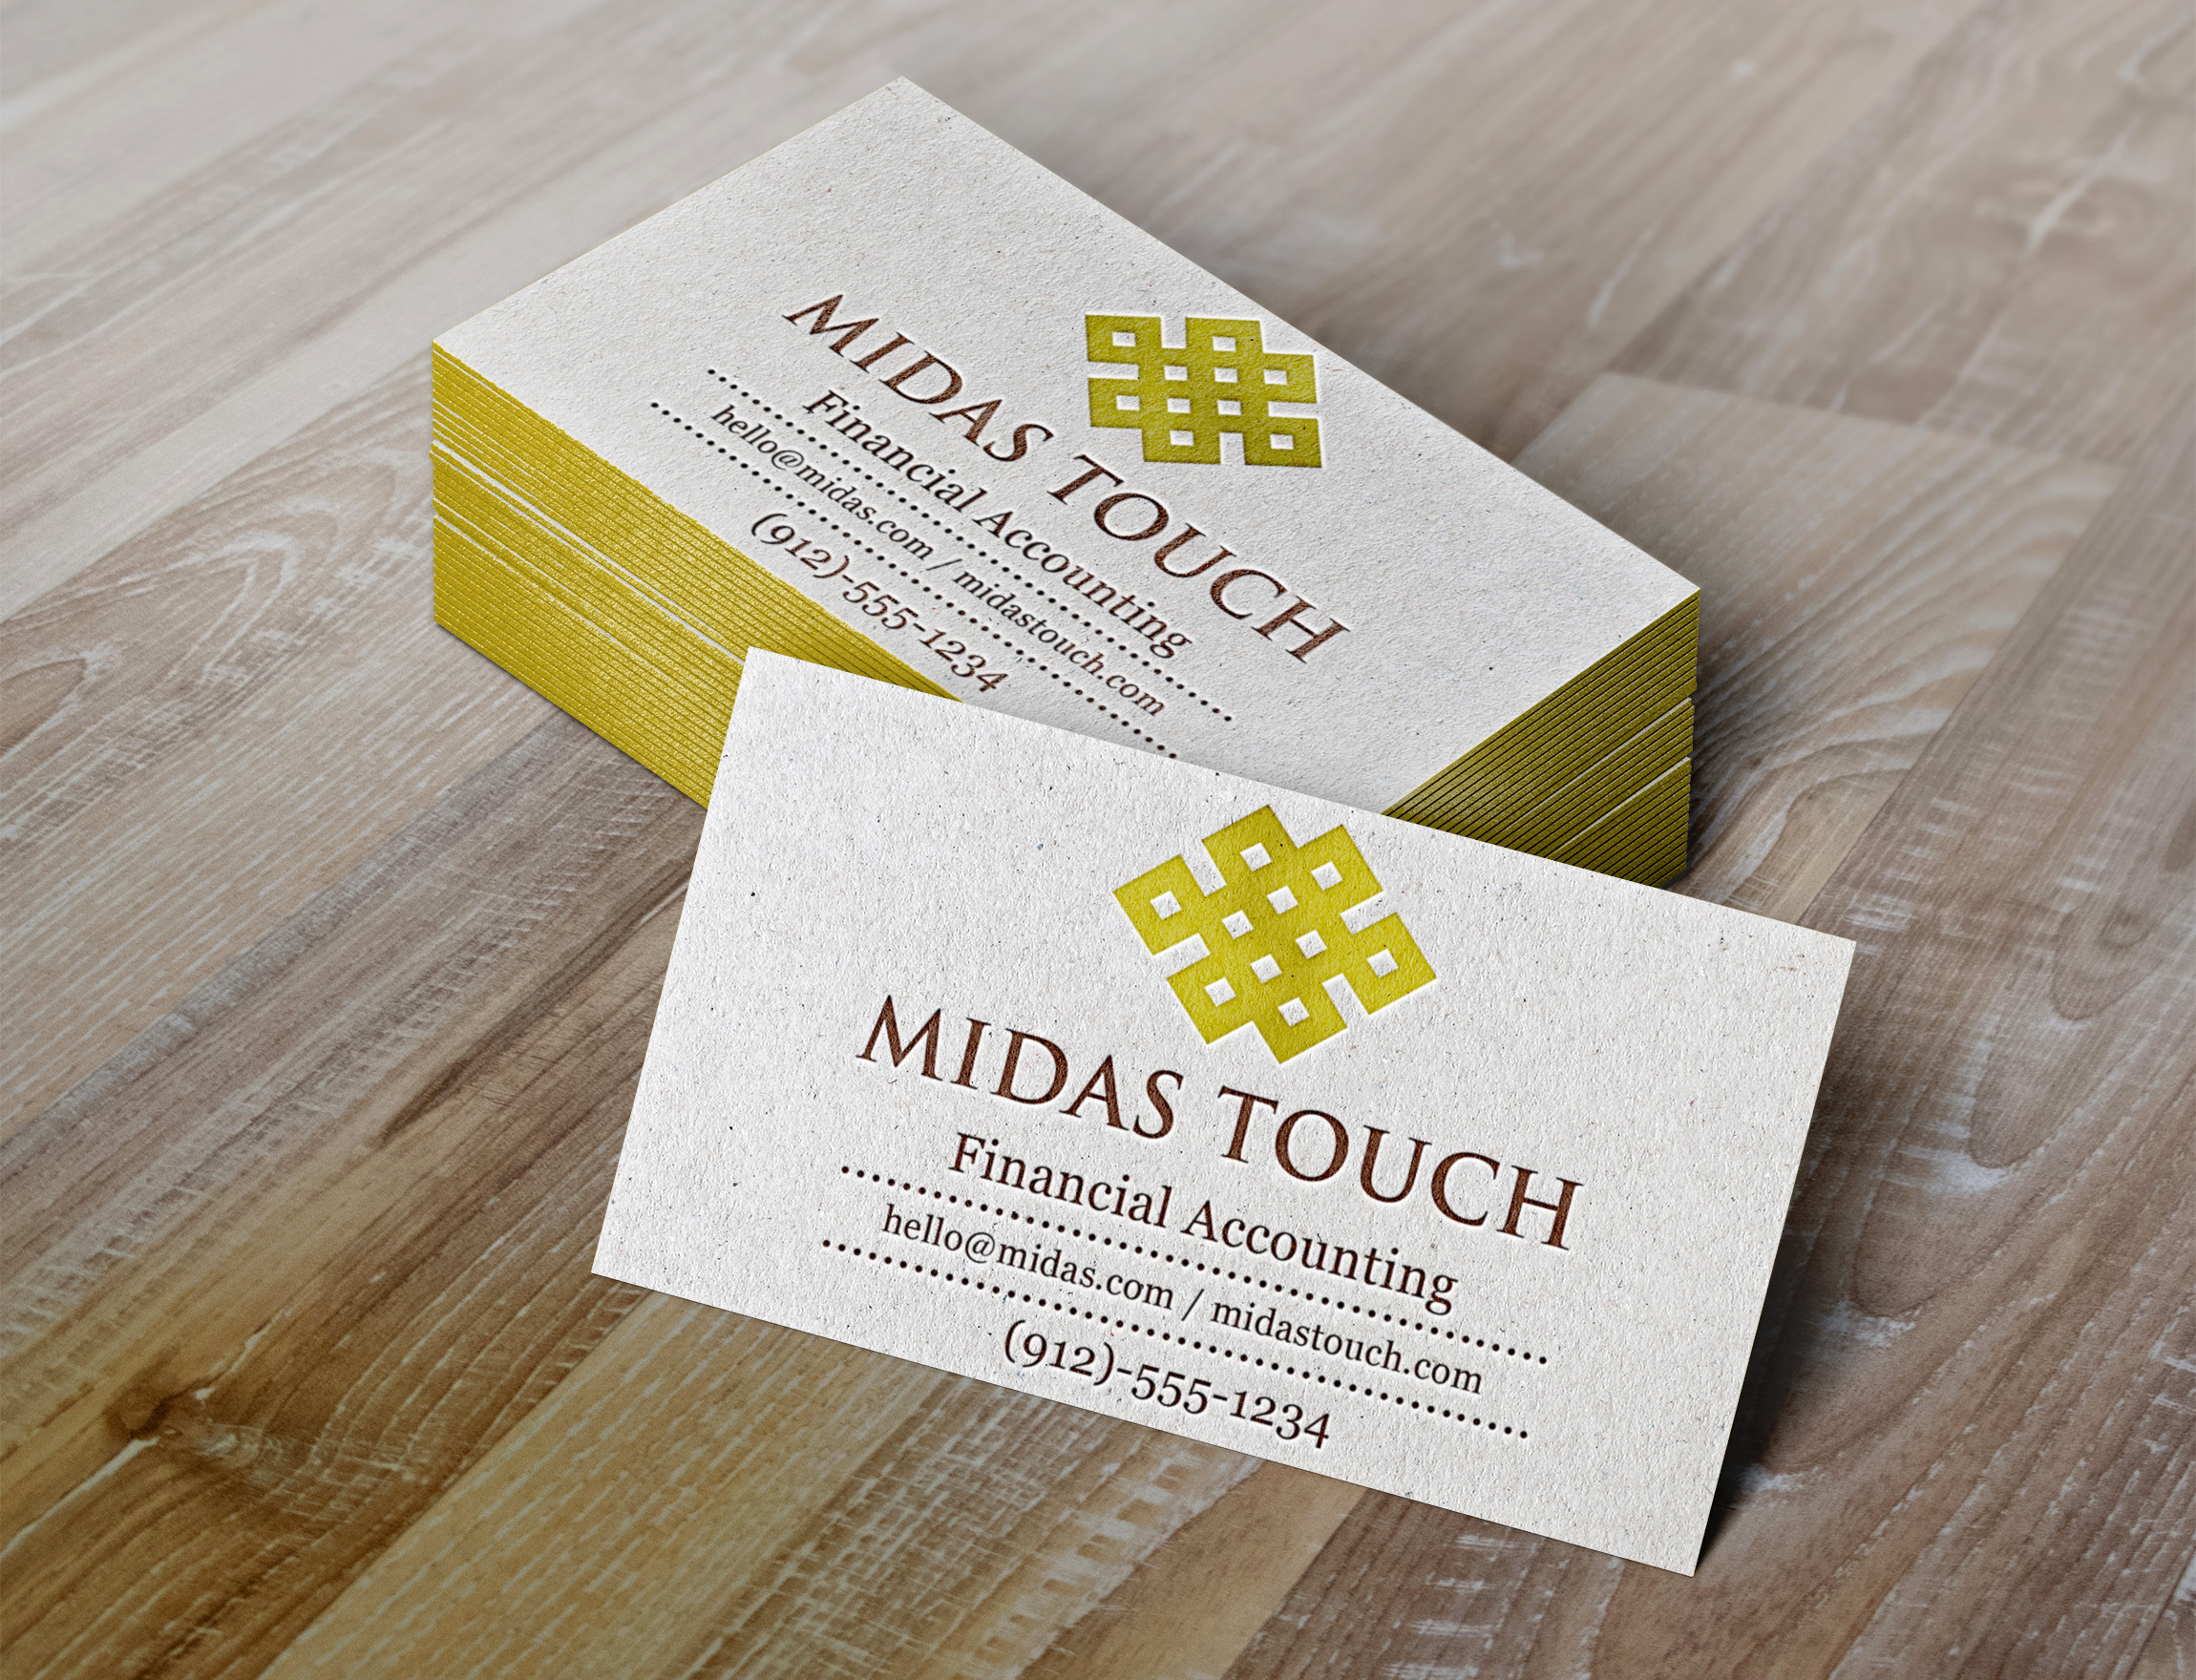 Midas Touch  by grafico.molina  a perfect logo for Accounting & Financial